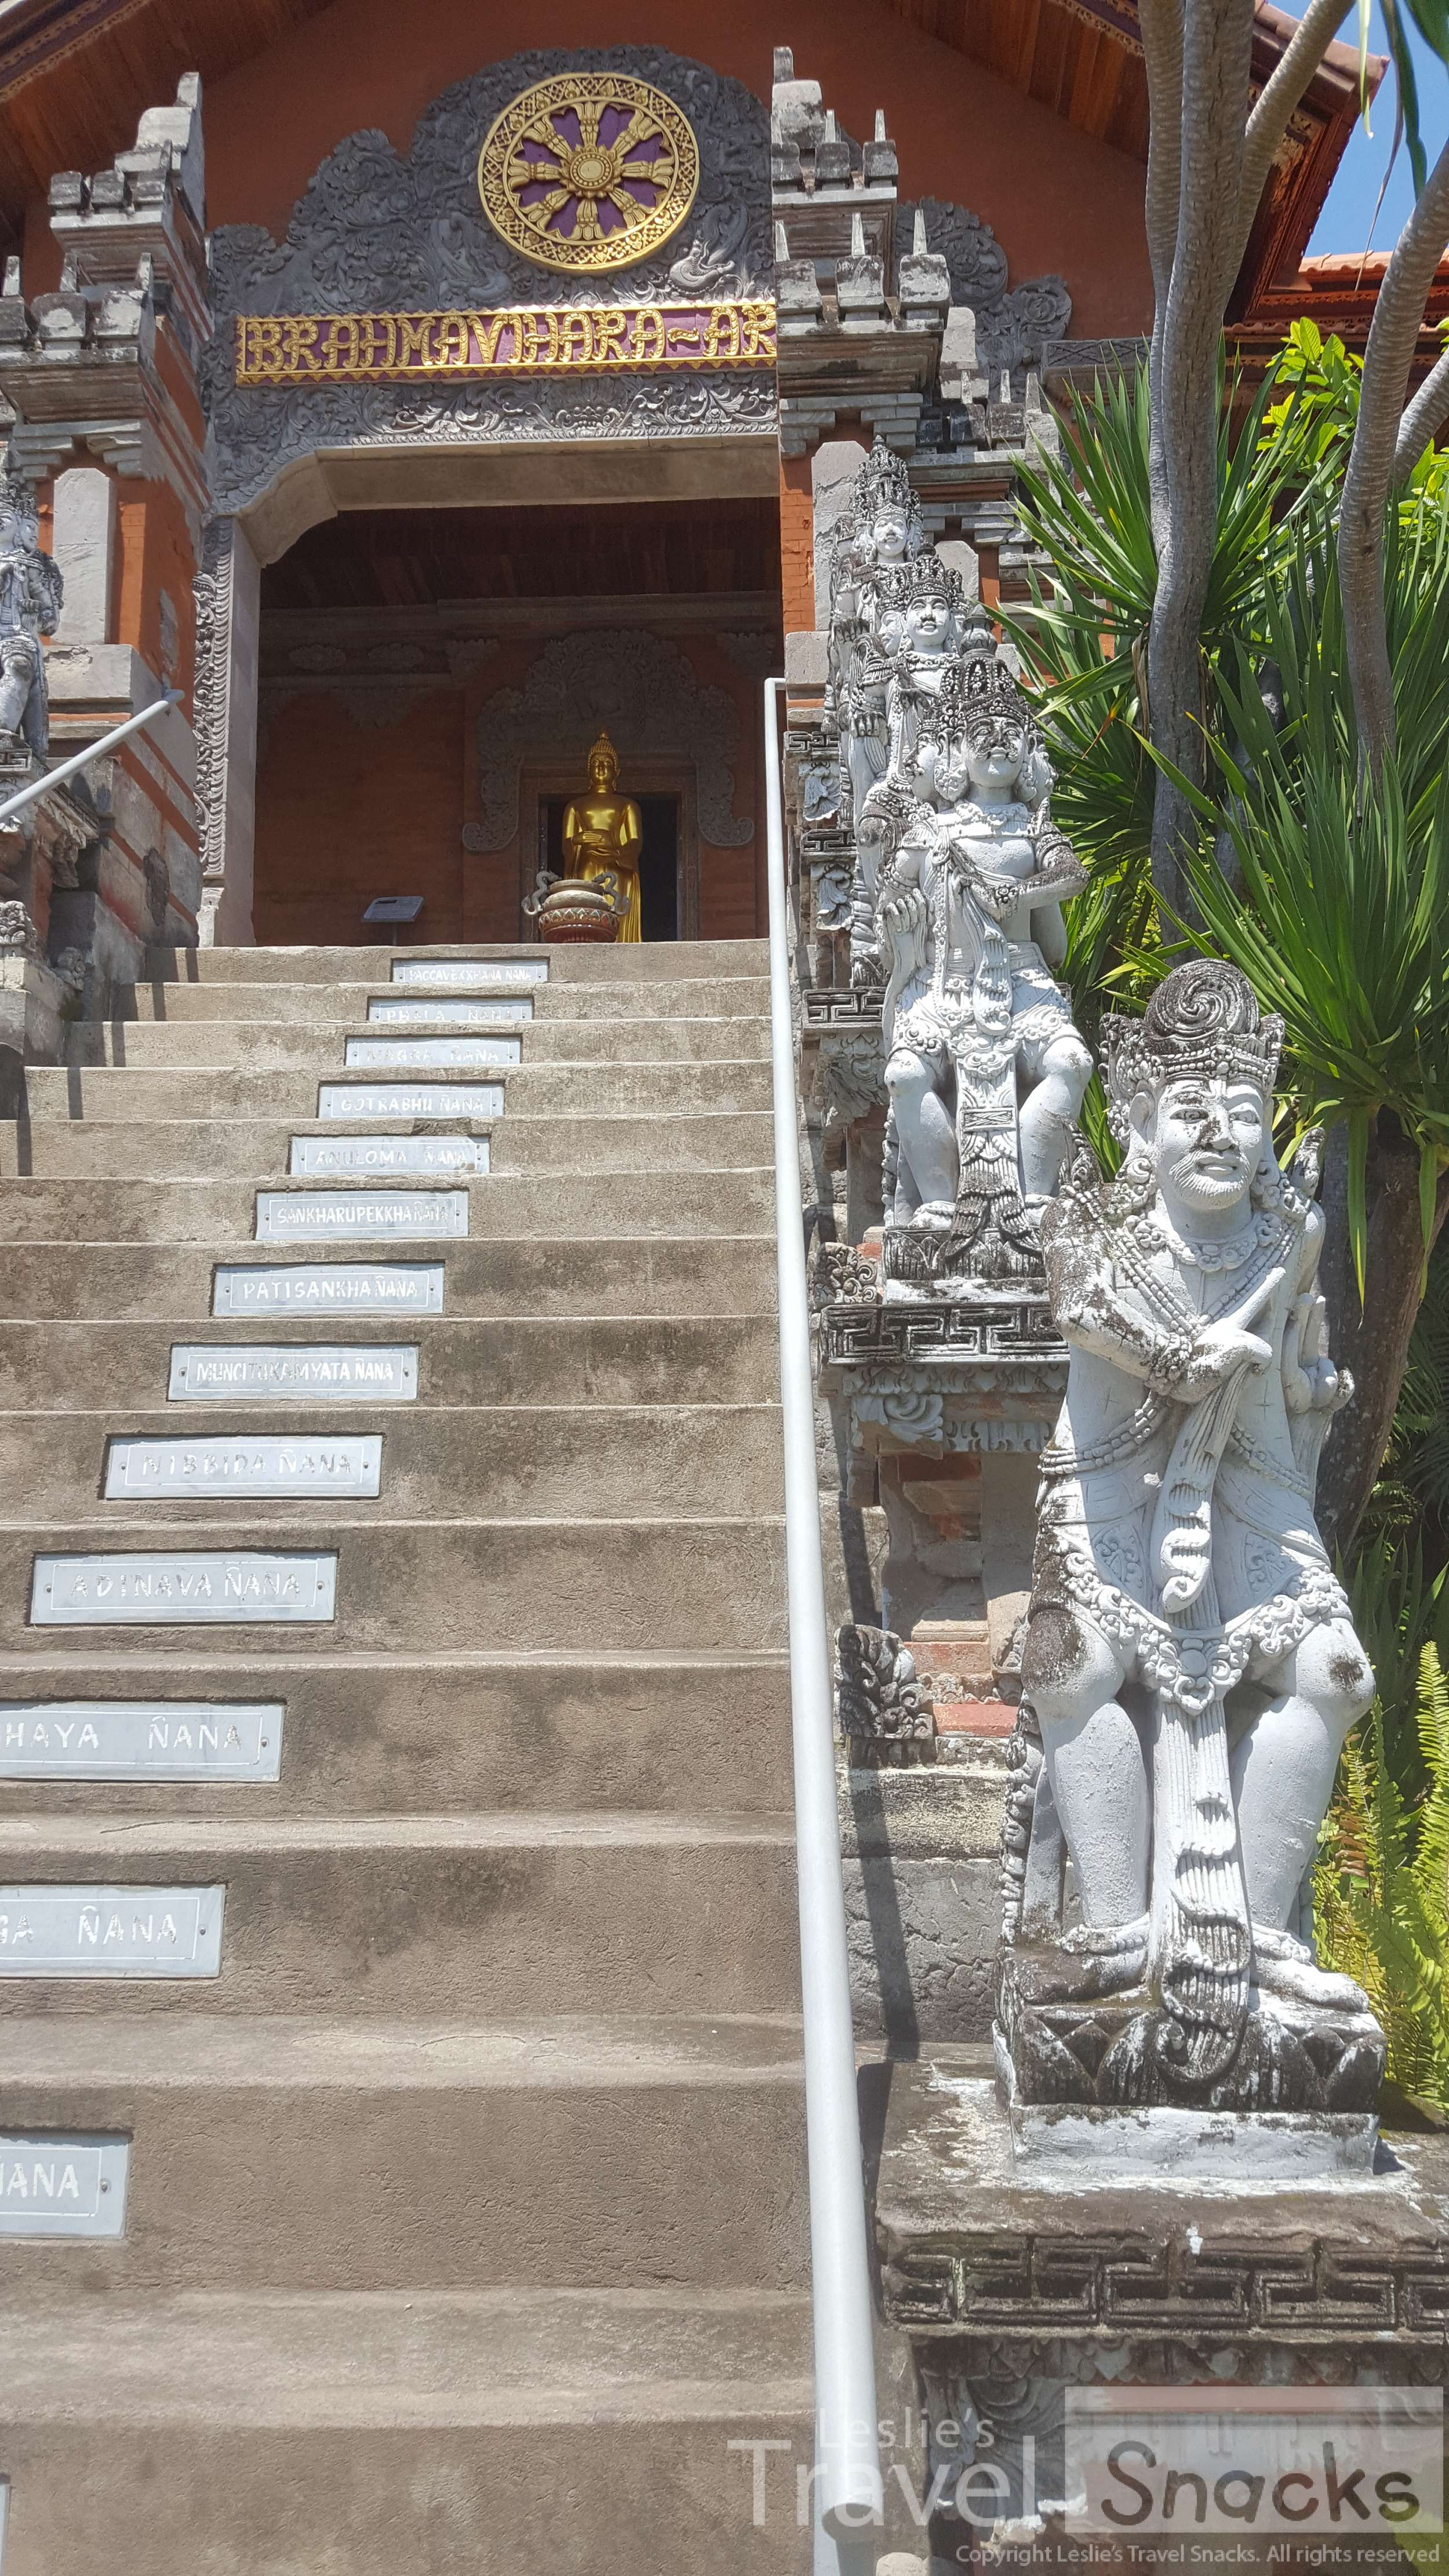 Stairs up to the main Dharamsala (mediation room). The stairs each have a Buddhist quality or precept written on them.